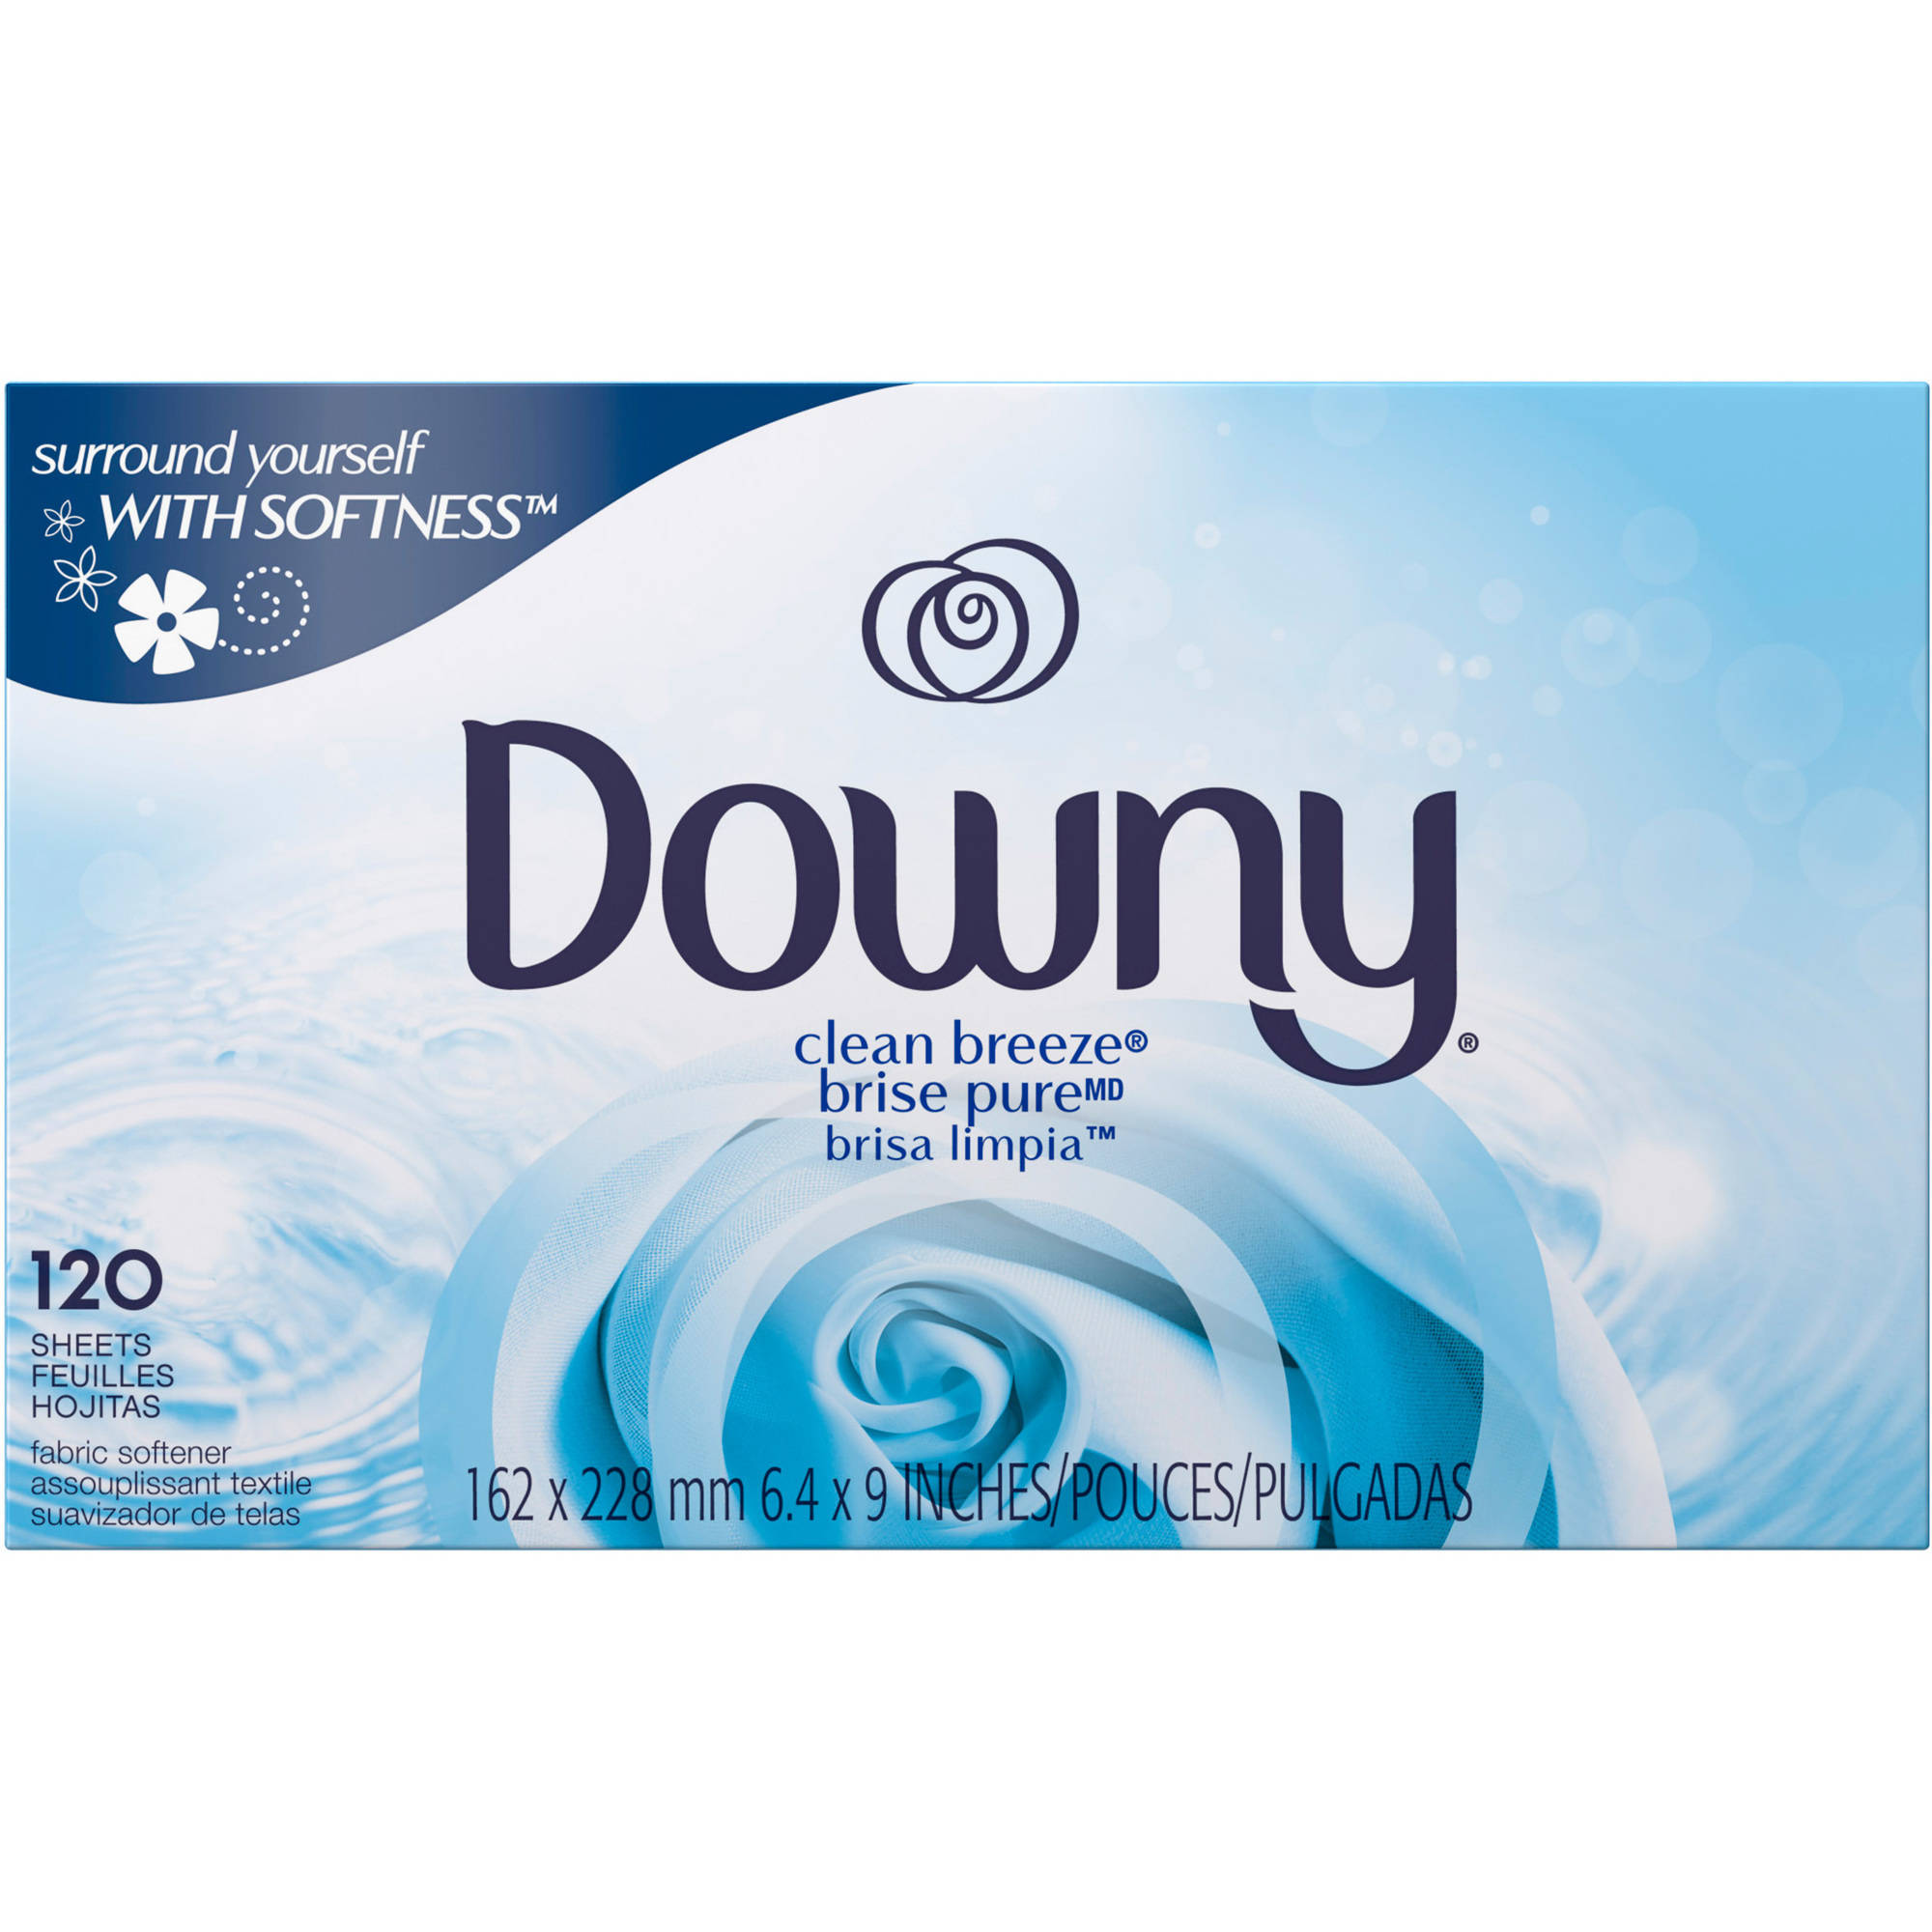 Downy Clean Breeze Fabric Softener Dryer Sheets, 120 count